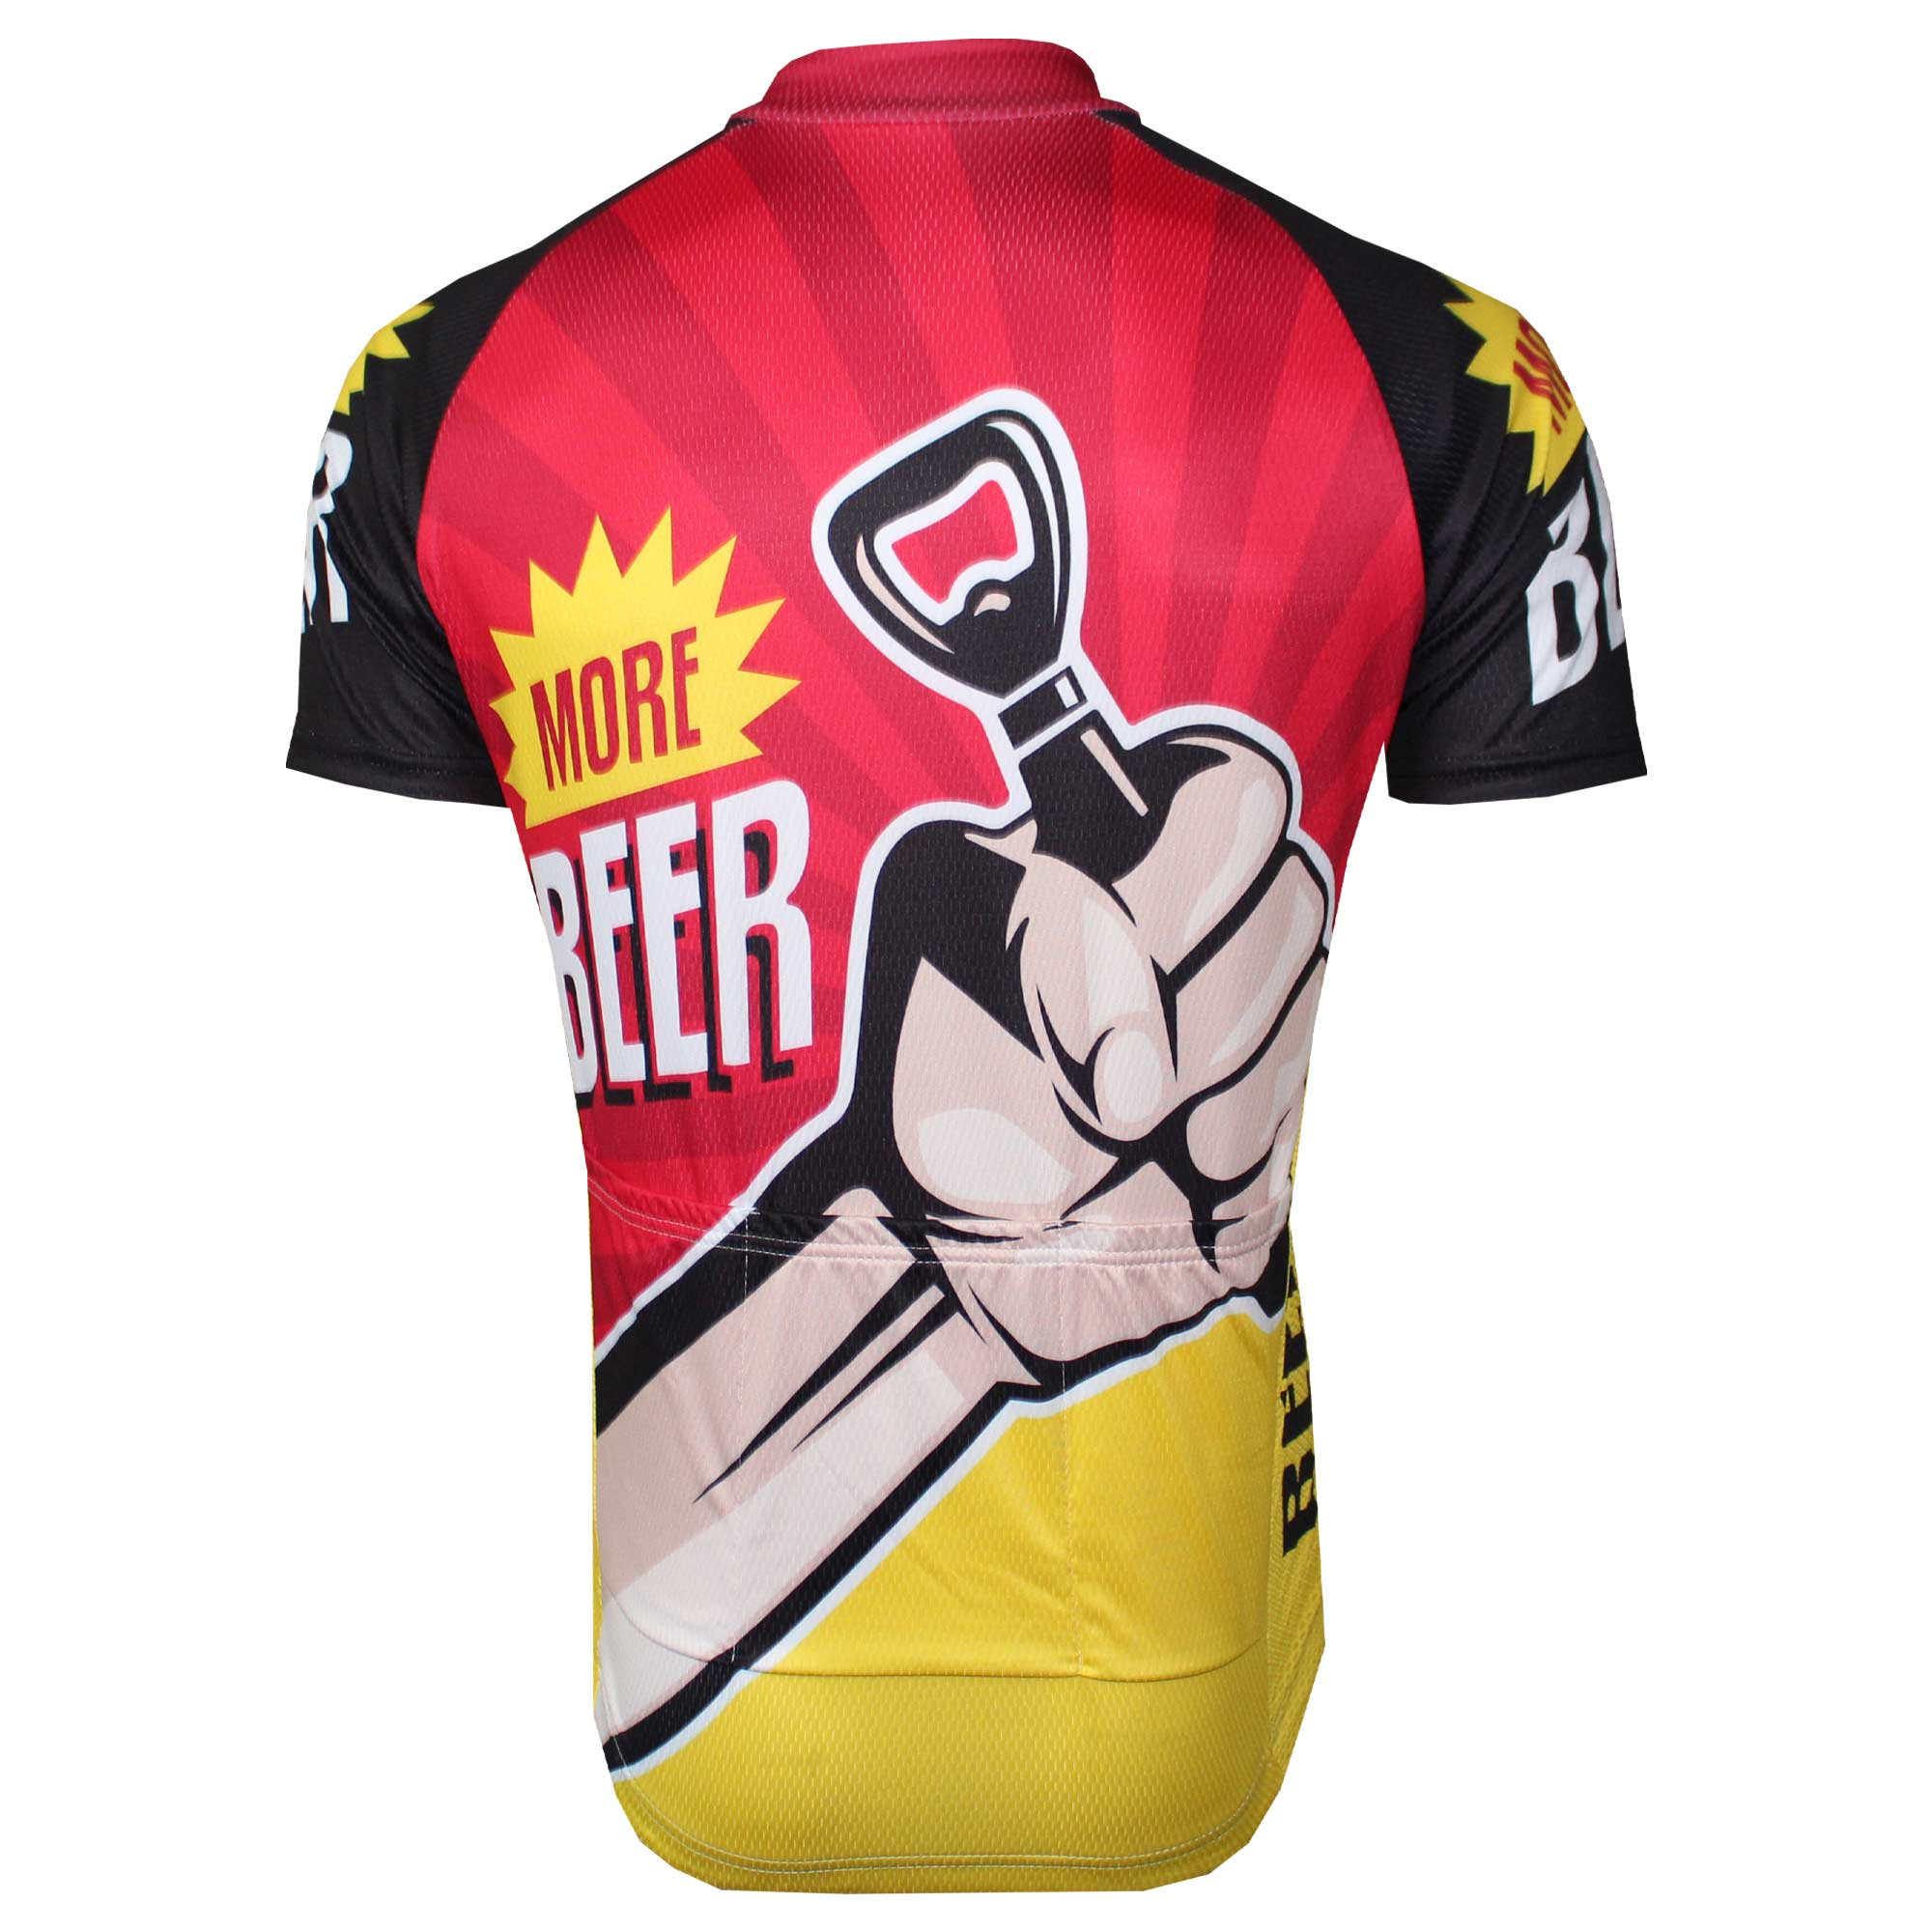 More Beer Bottle Opener Cycling Jersey - Granny Gear